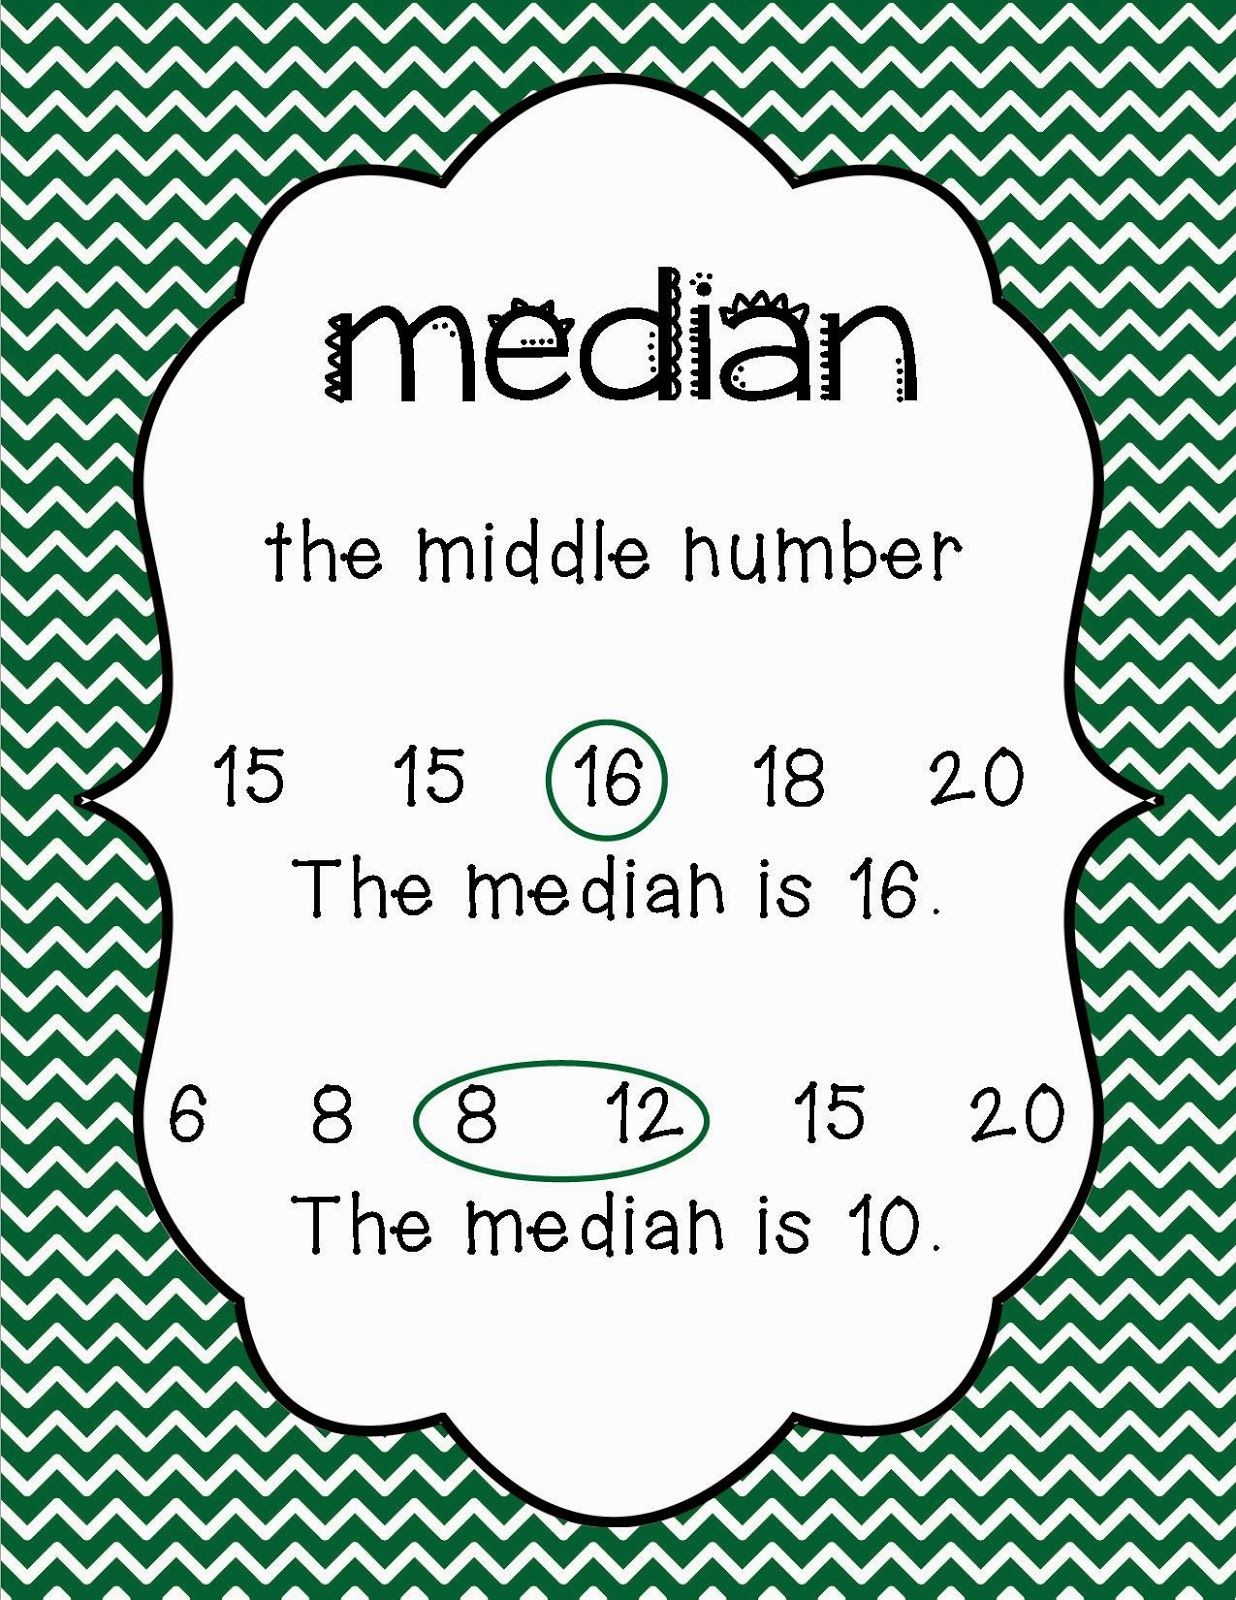 Mean Mode Median And Range Posters With Images